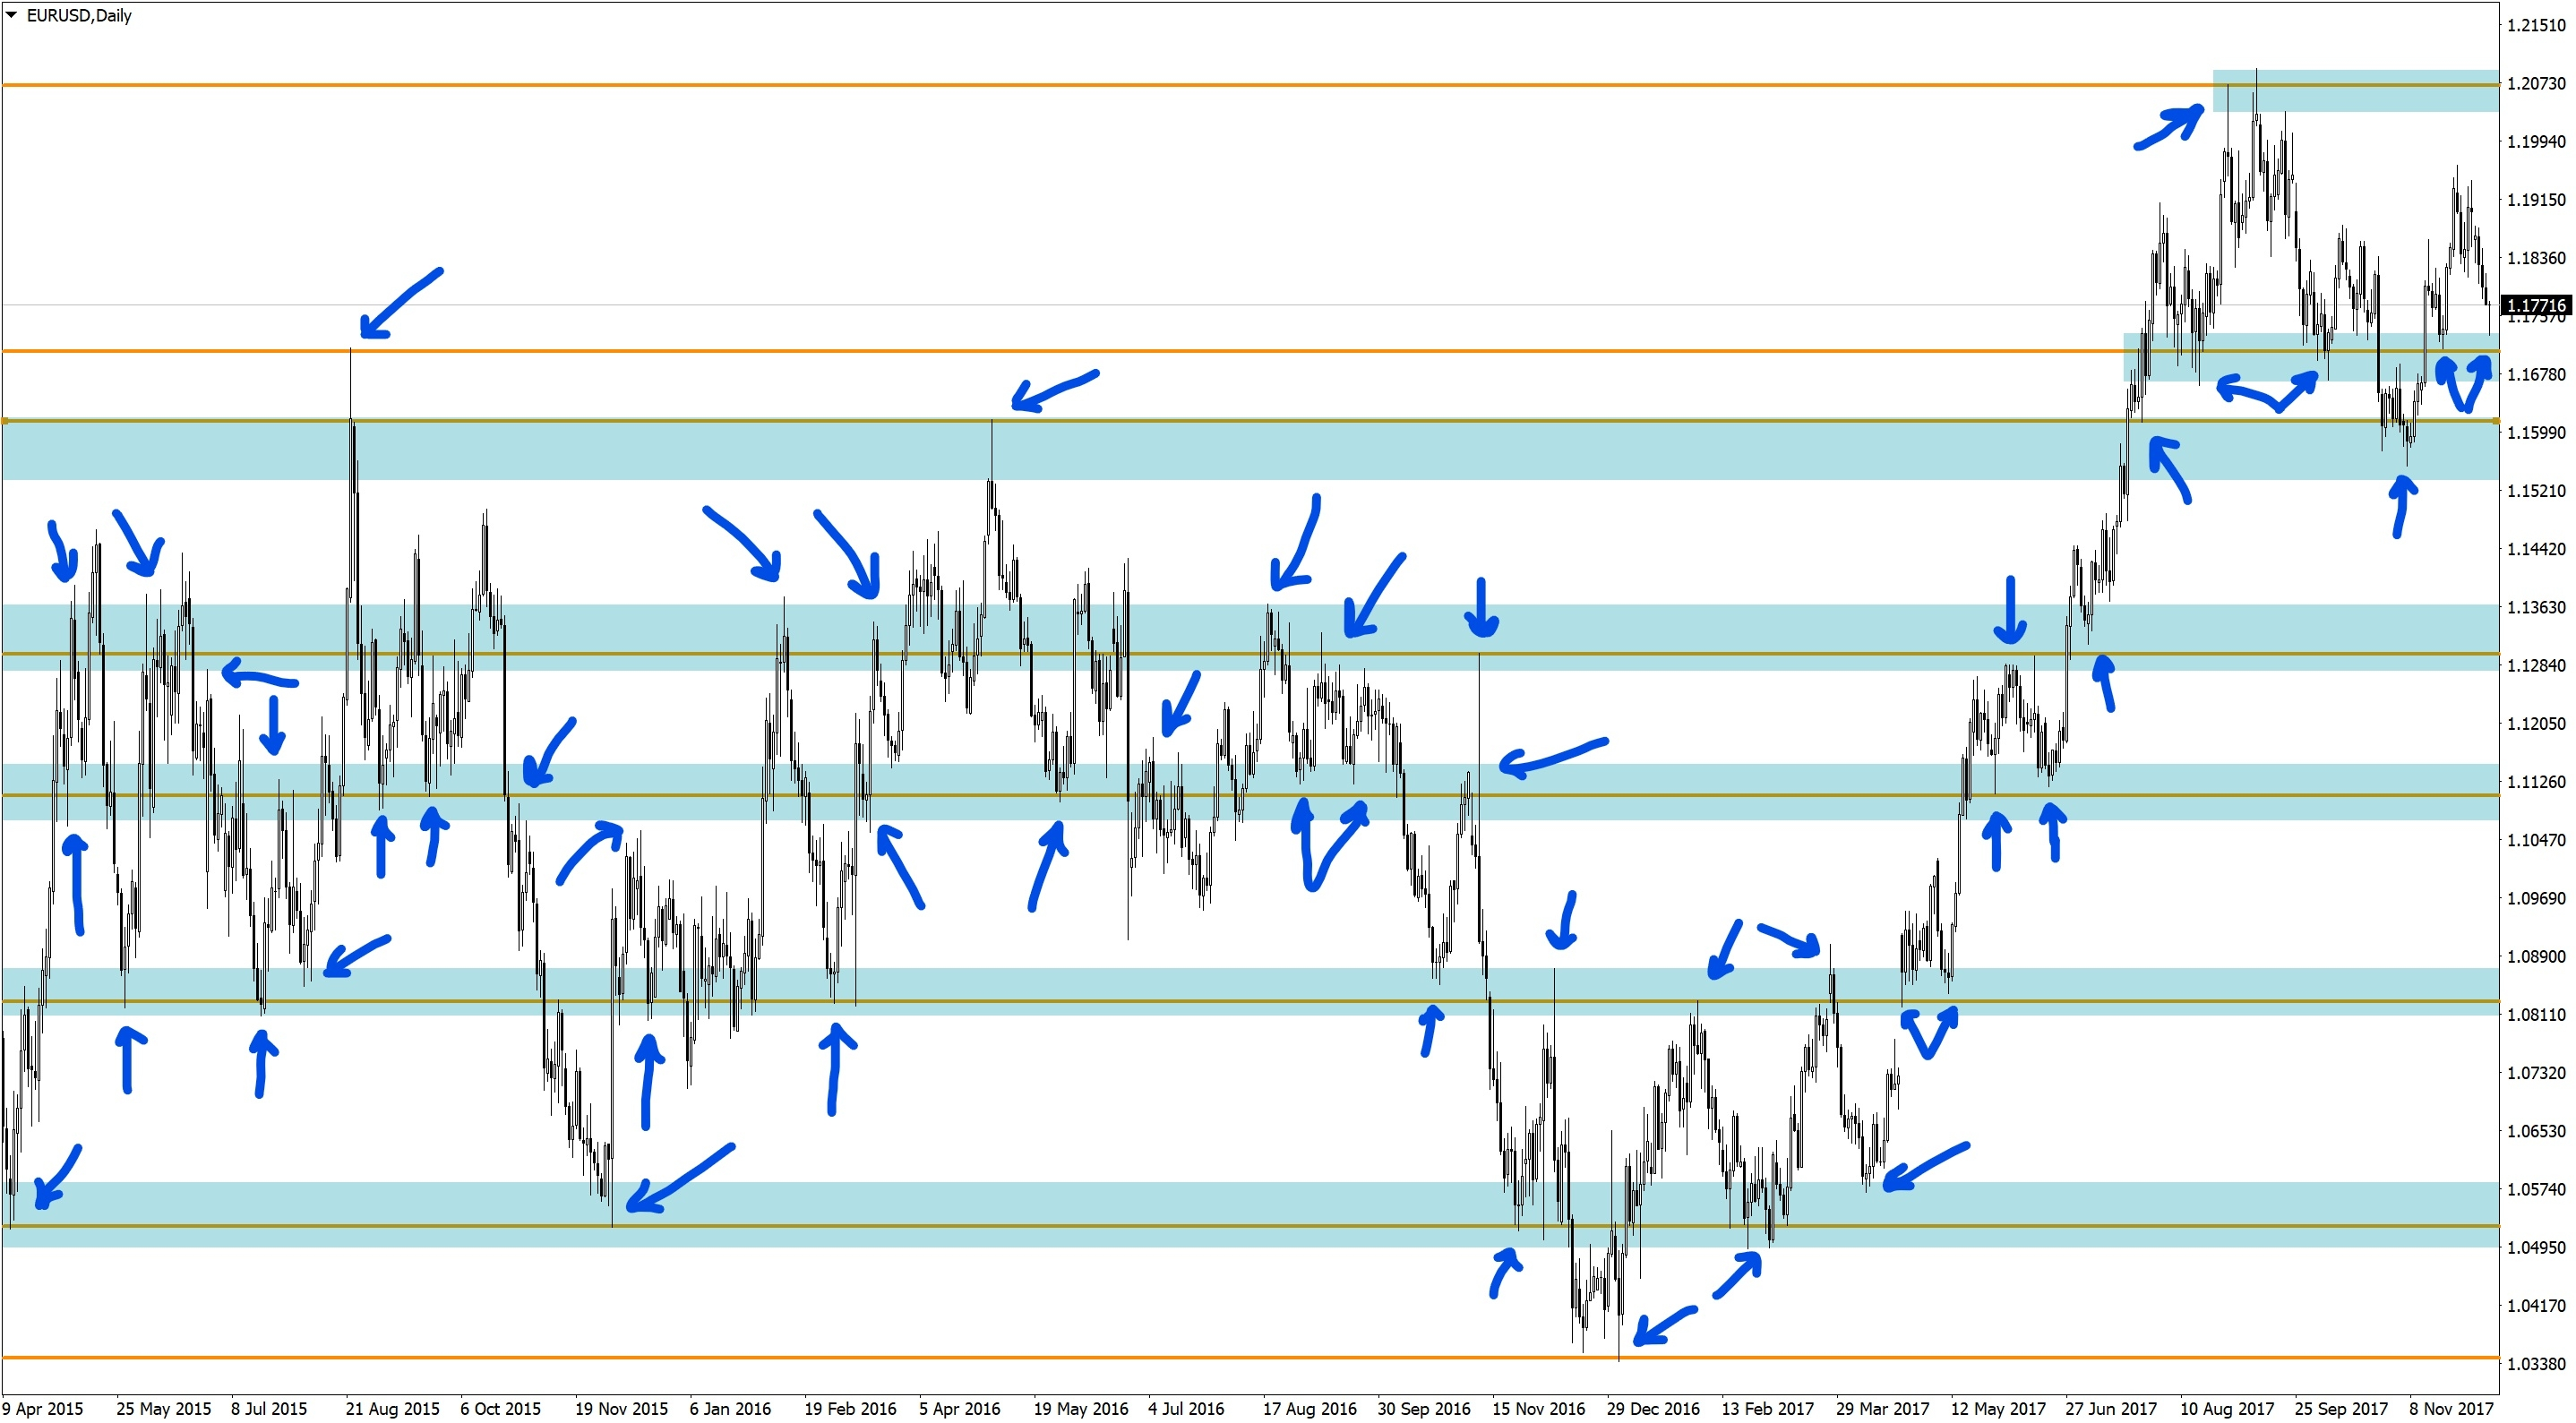 Support and resistance levels at EURUSD Daily